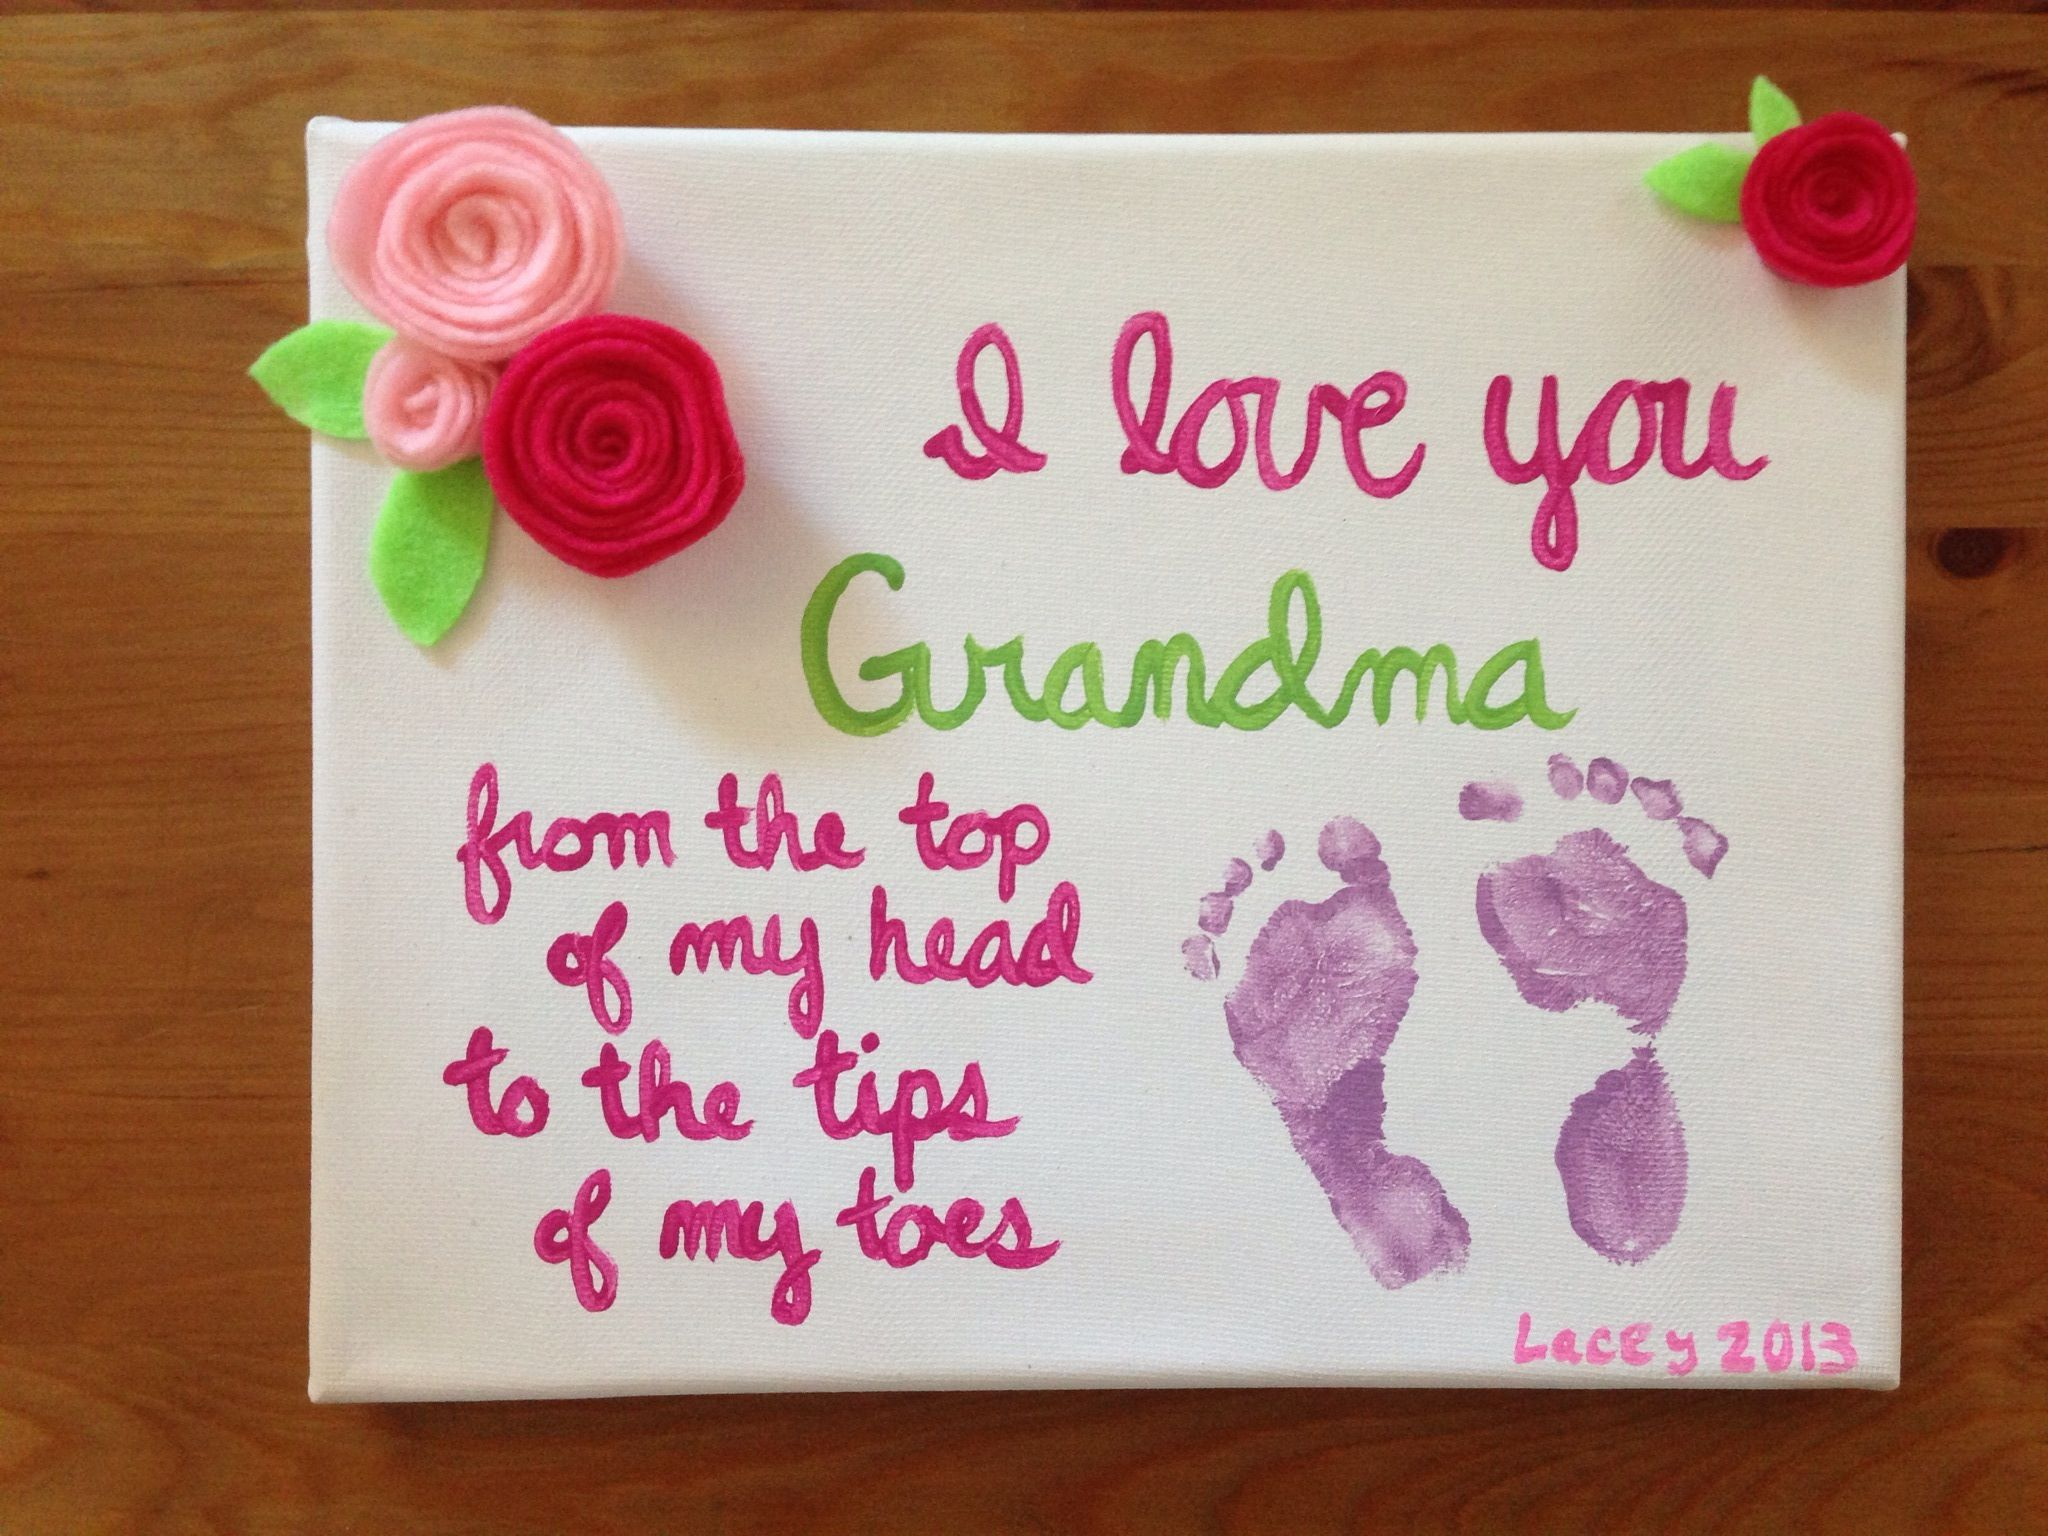 Diy Mothers Day Gifts From Baby Baby Footprint Gift For Grandma Hand Made Felt Flowers